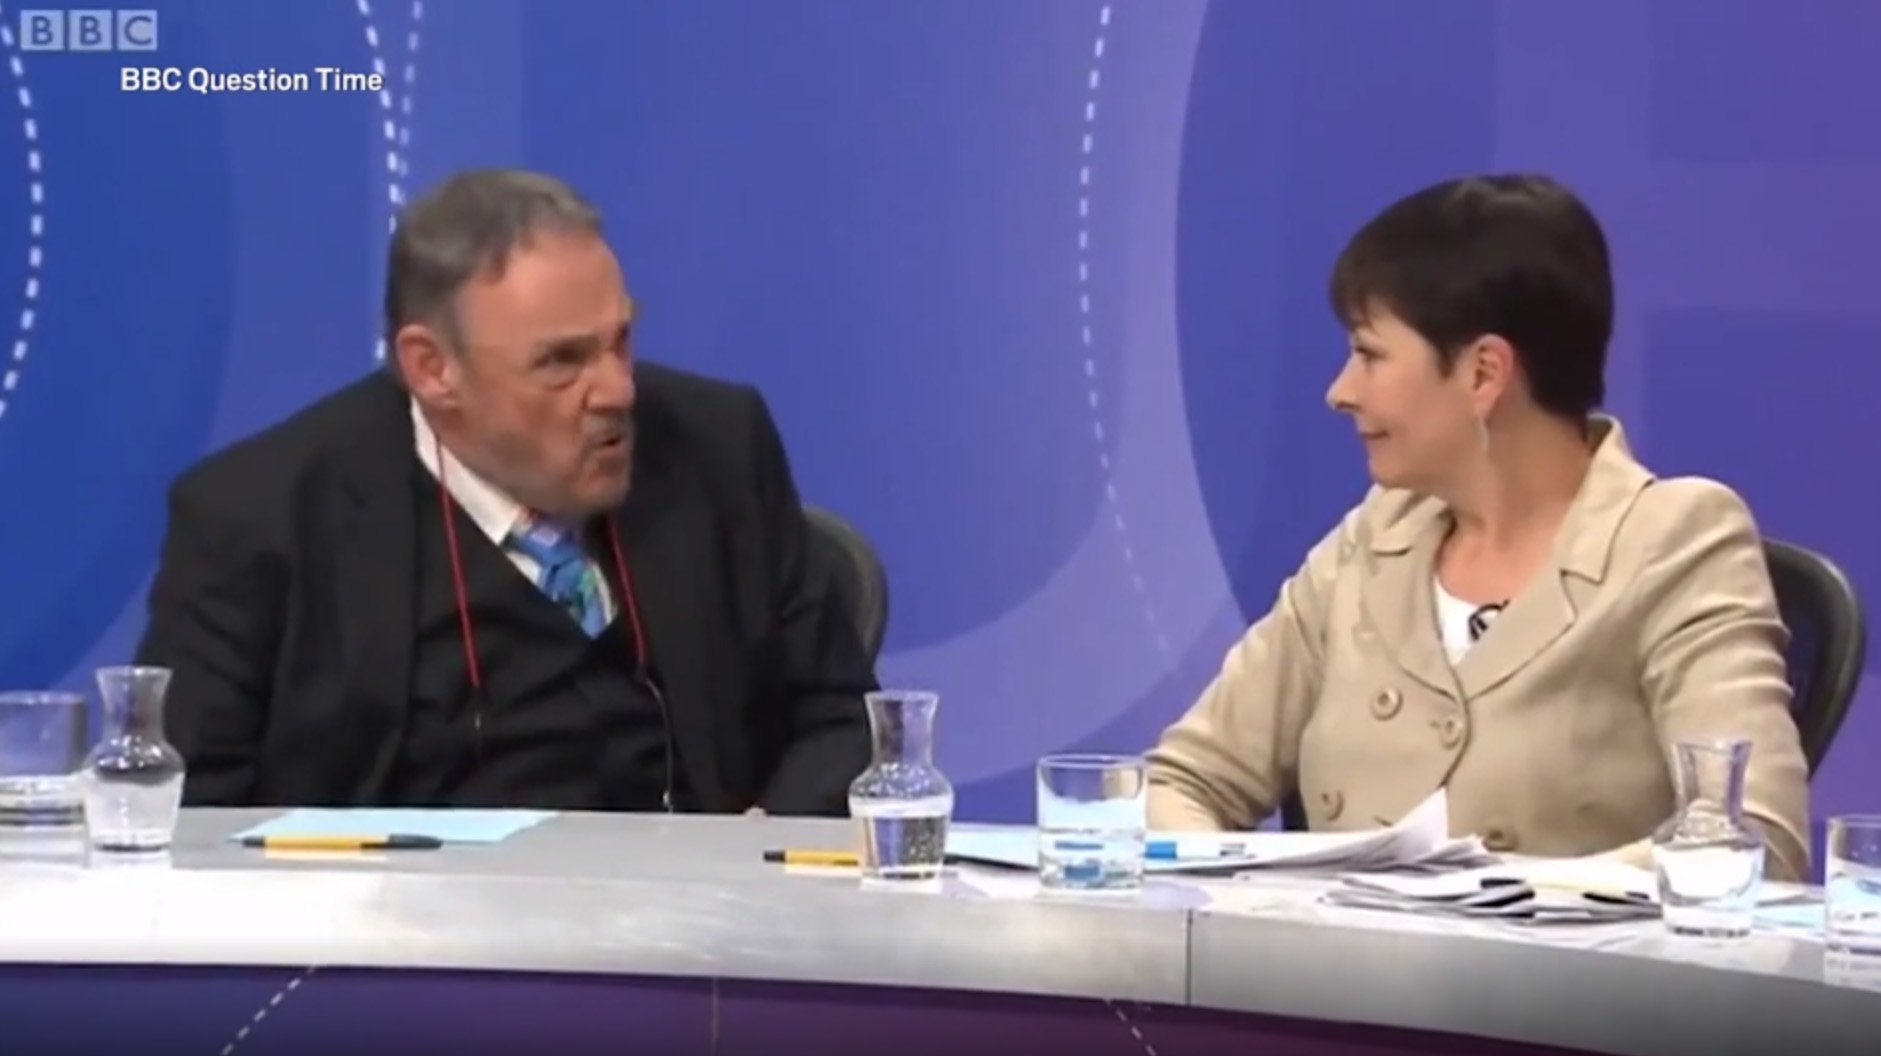 Did anyone else feel genuinely worried for Caroline Lucas in this moment? John Rhys-Davies may sound posh, but that was thuggish behaviour by anyone's definition. (sexist too) #BBCqt